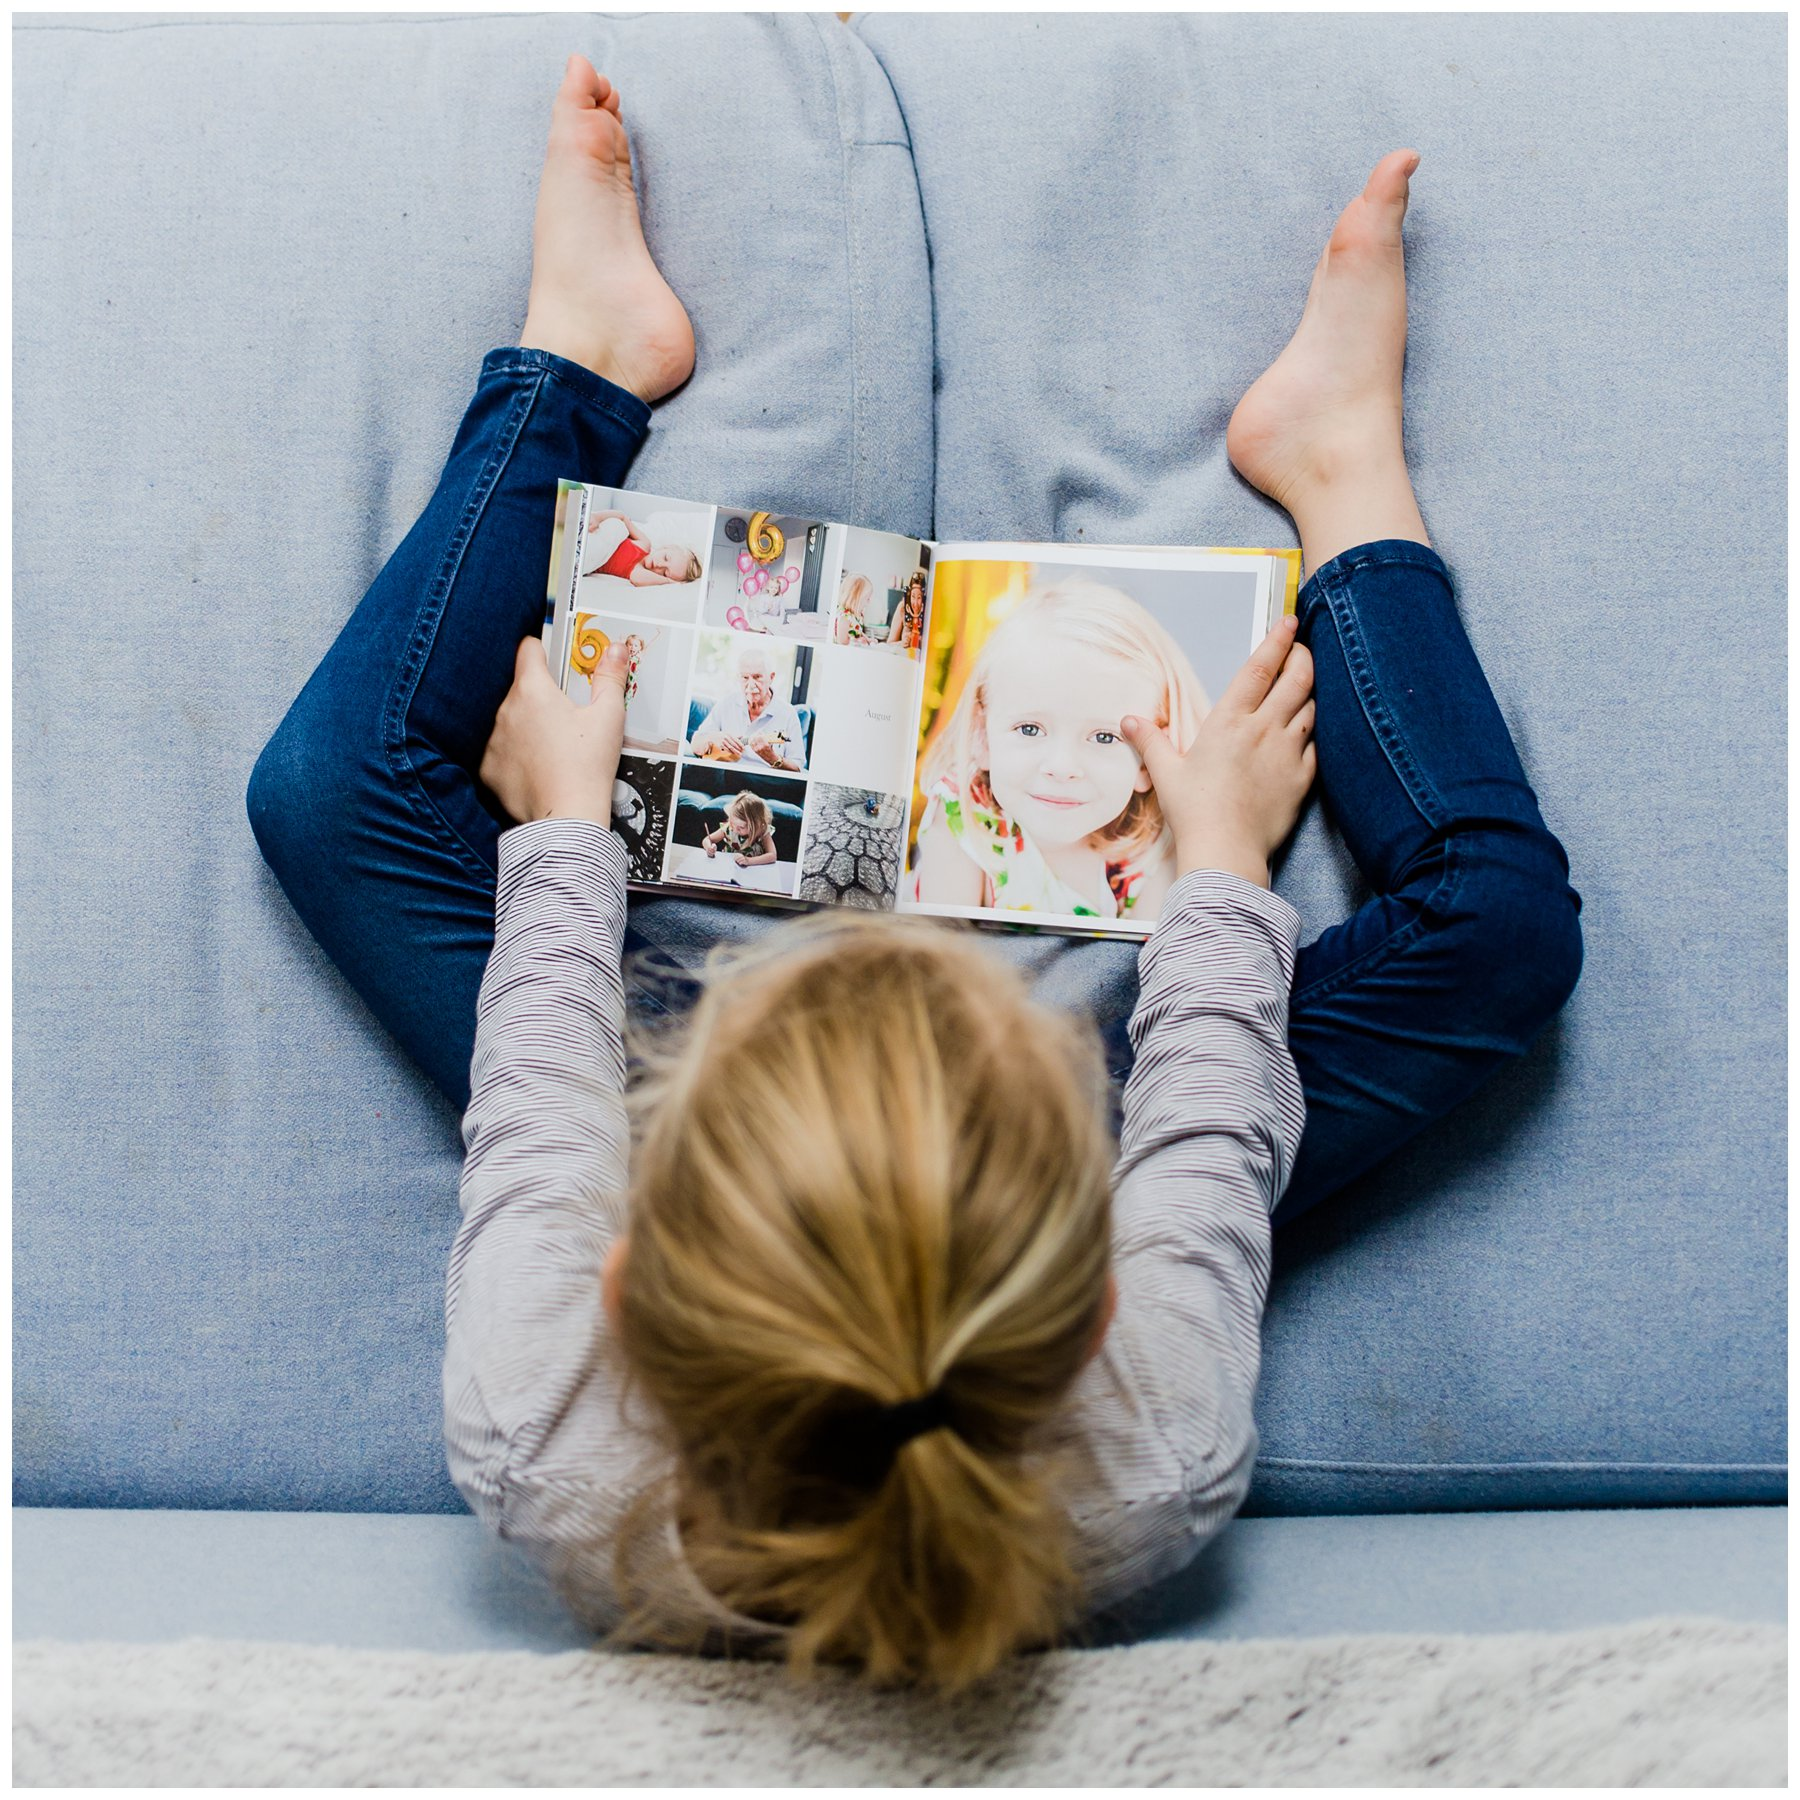 Girl reading photography album